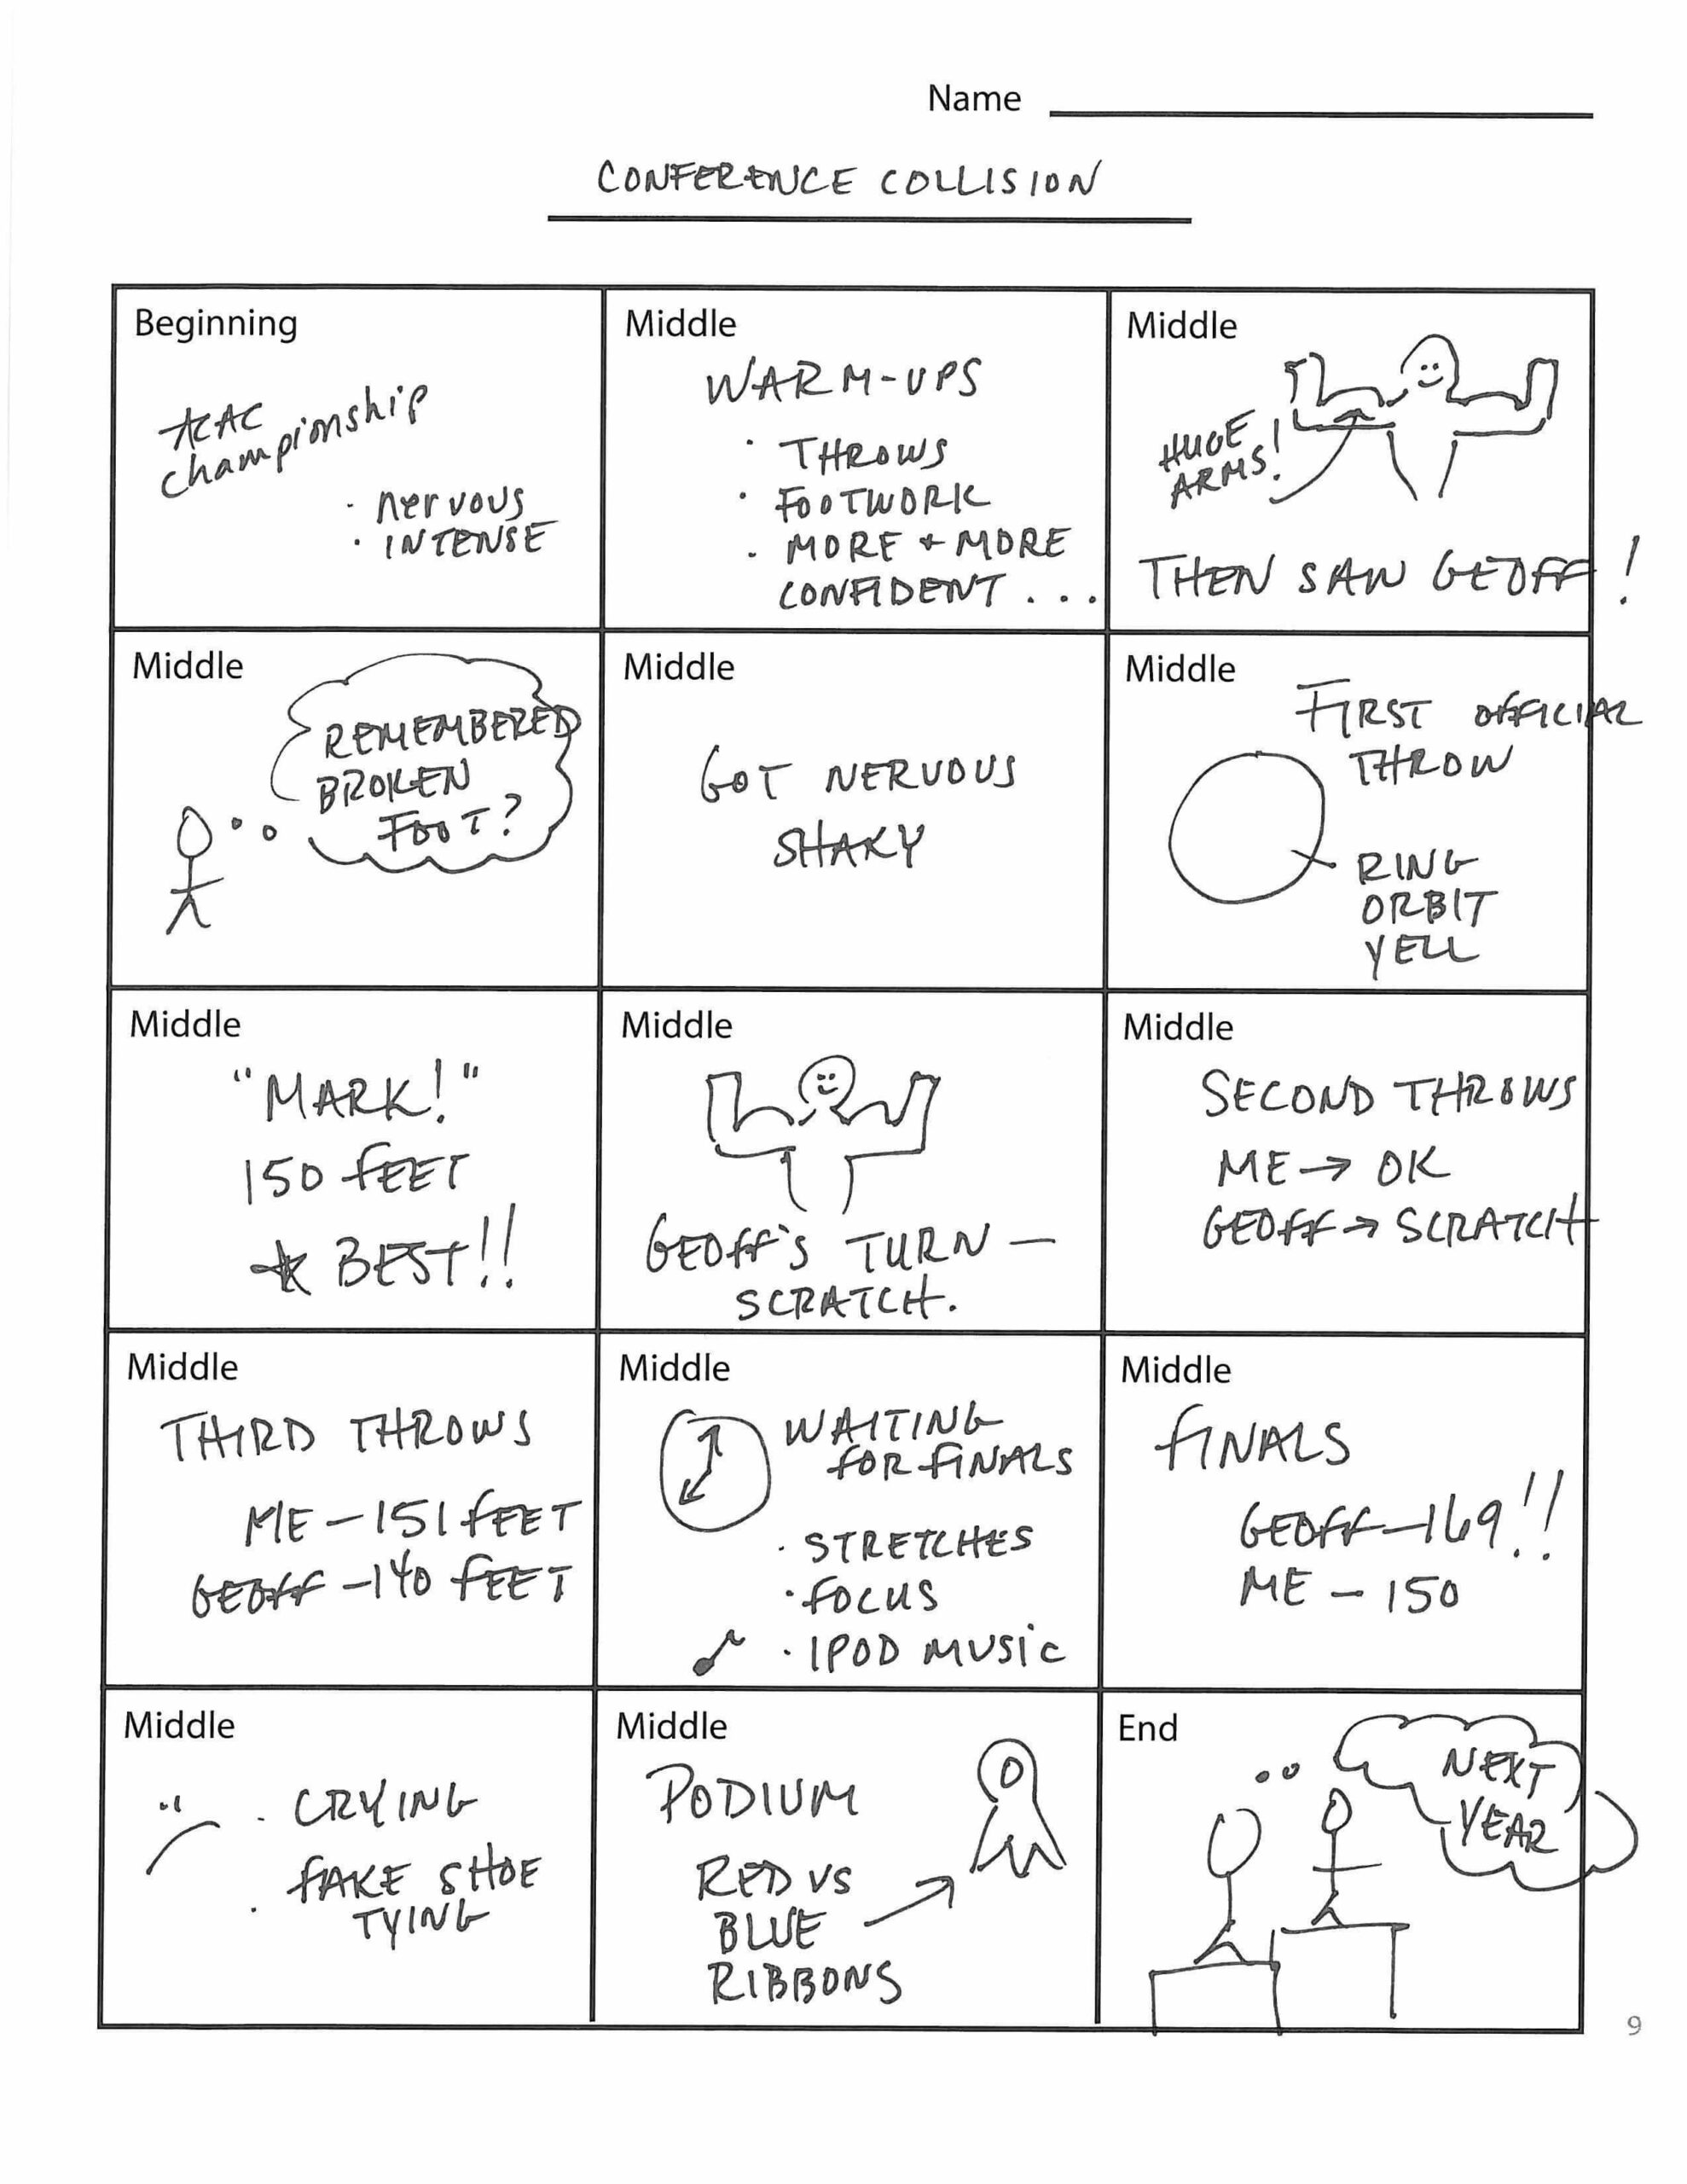 Student Example: Conference Collision Storyboard